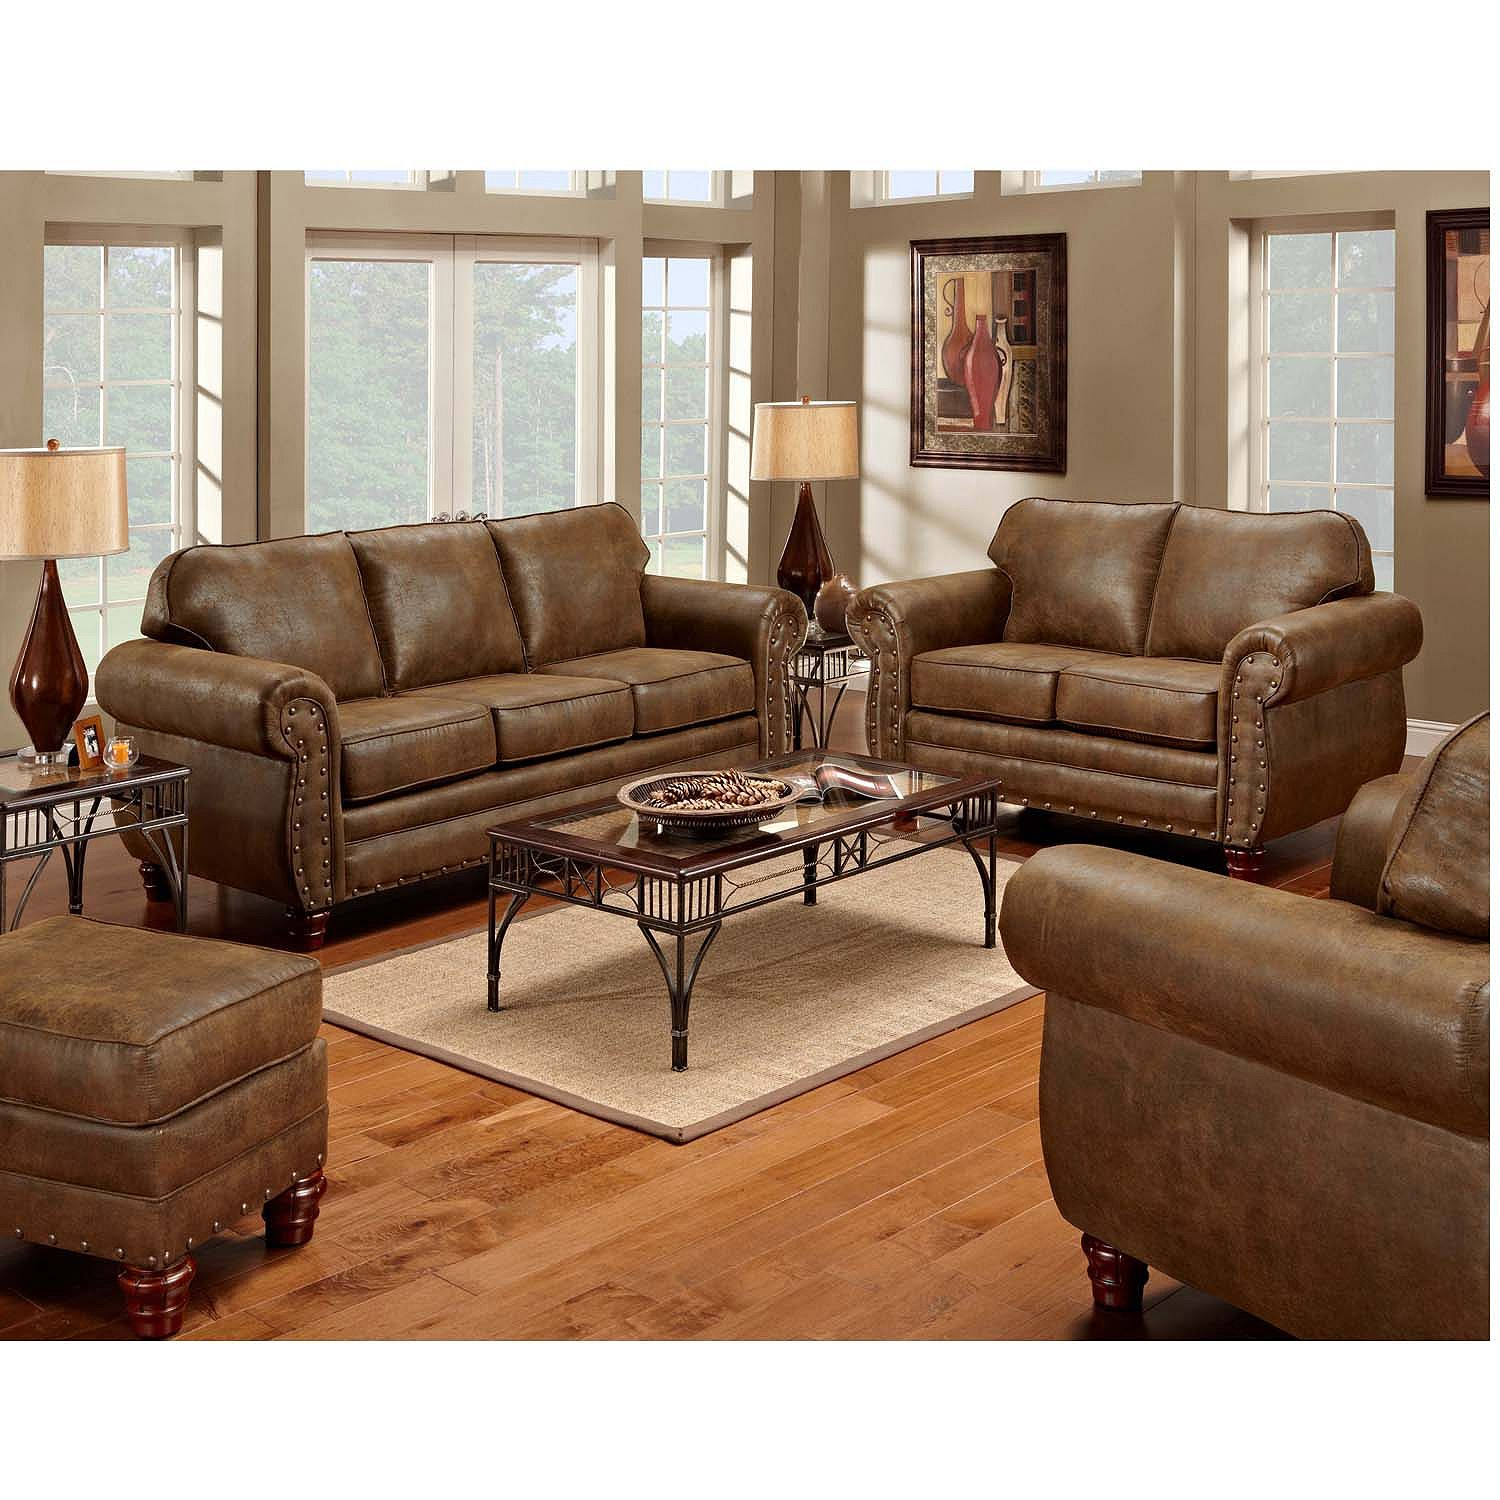 Top 4 comfortable chairs for living room homesfeed - Leather furniture for small living room ...